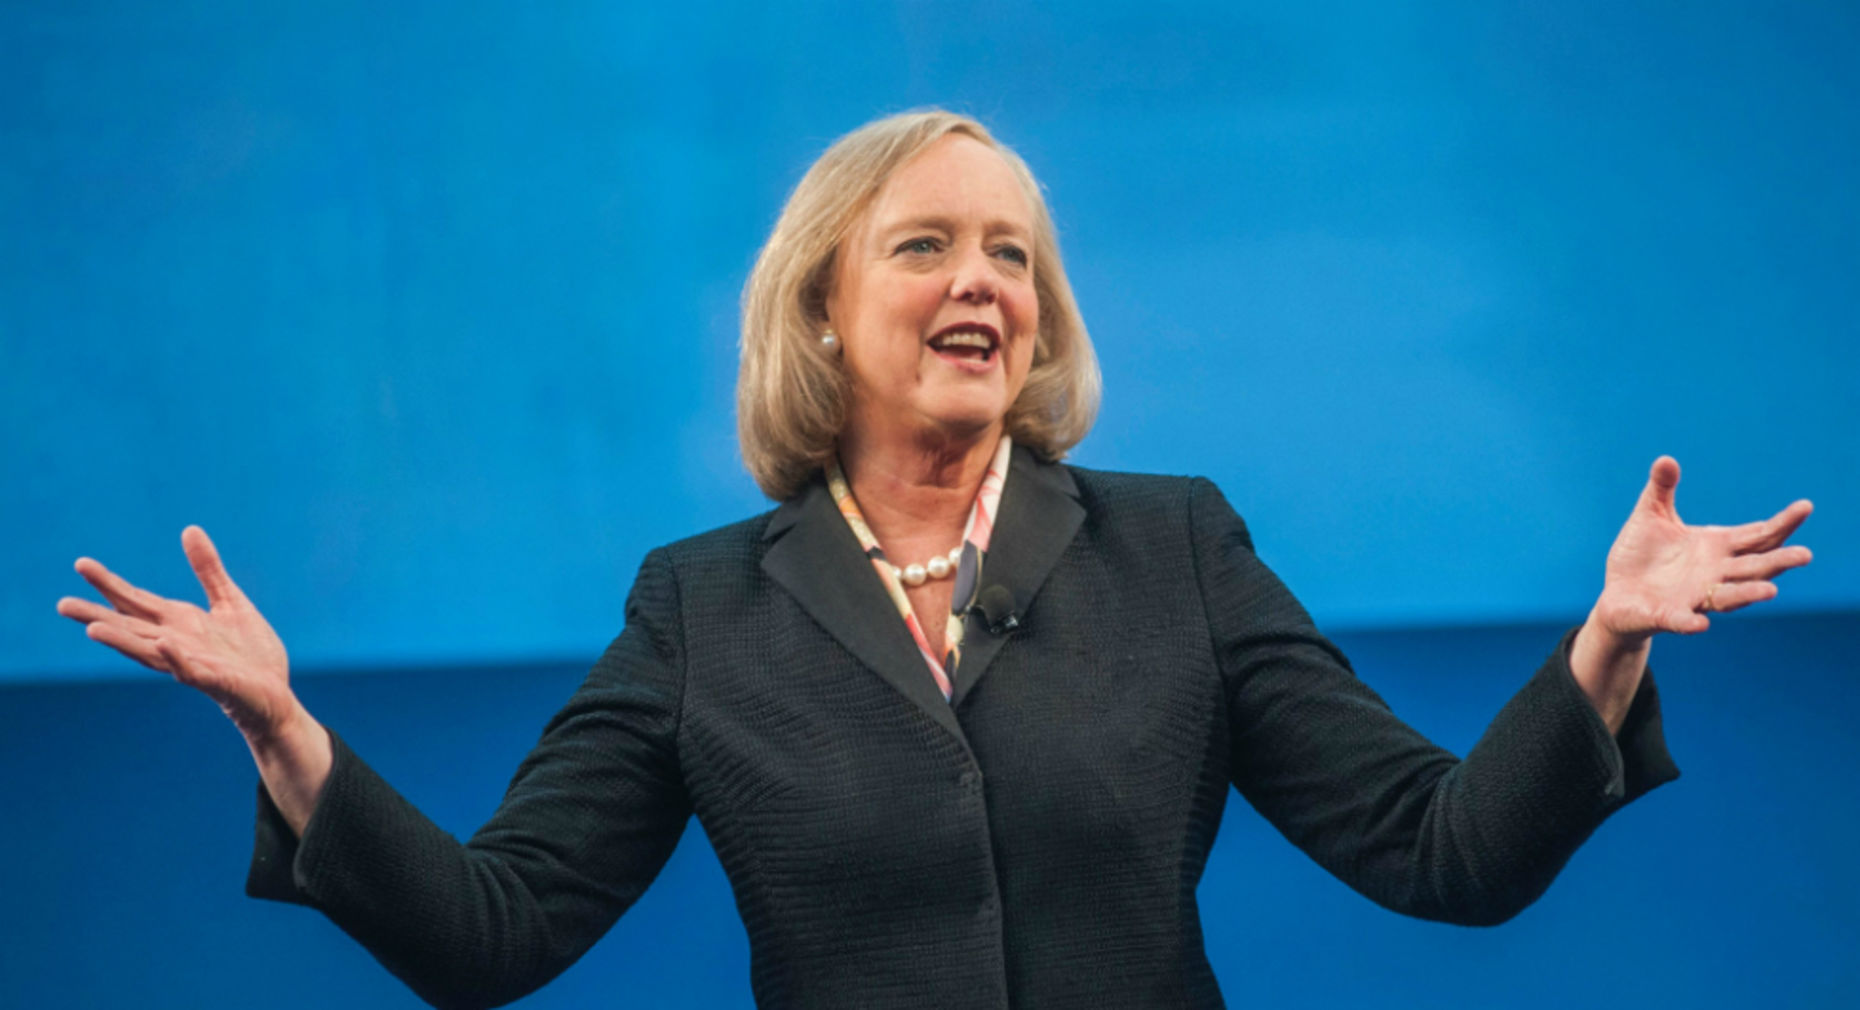 Hewlett-Packard CEO Meg Whitman. Photo by Bloomberg.